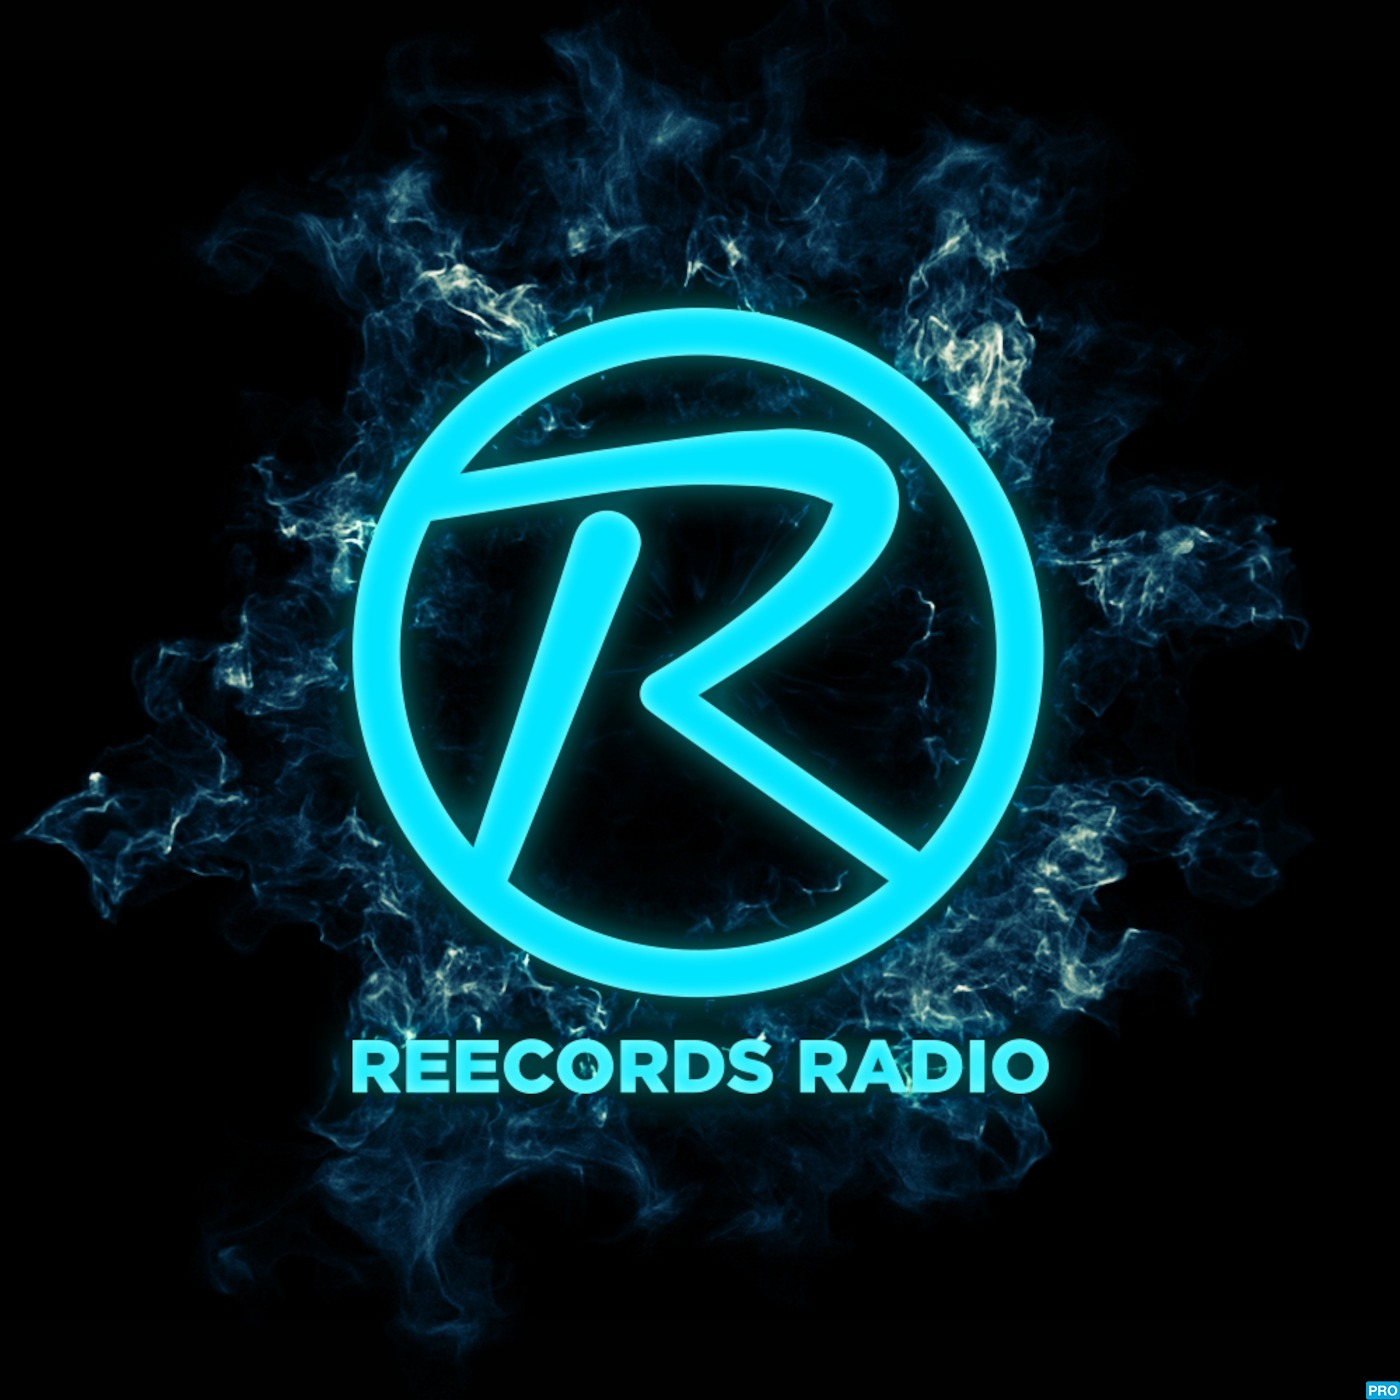 Norman Doray presents Reecords Radio